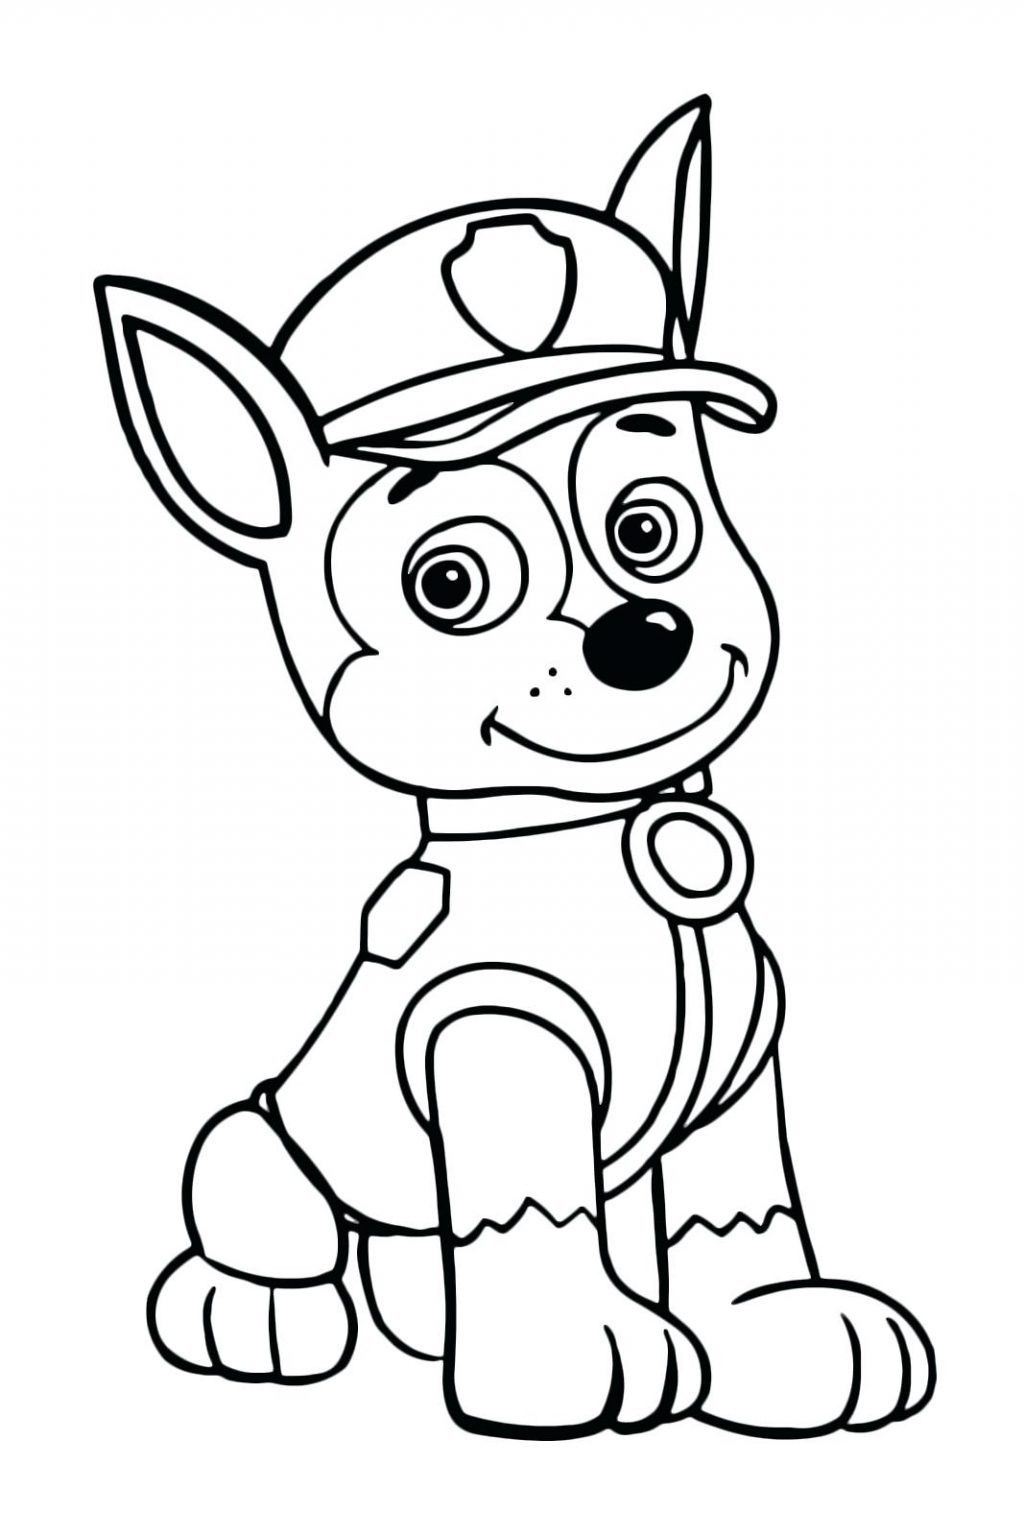 Tracker Paw Patrol Coloring Page Youngandtae Com In 2020 Paw Patrol Coloring Paw Patrol Coloring Pages Paw Patrol Tracker